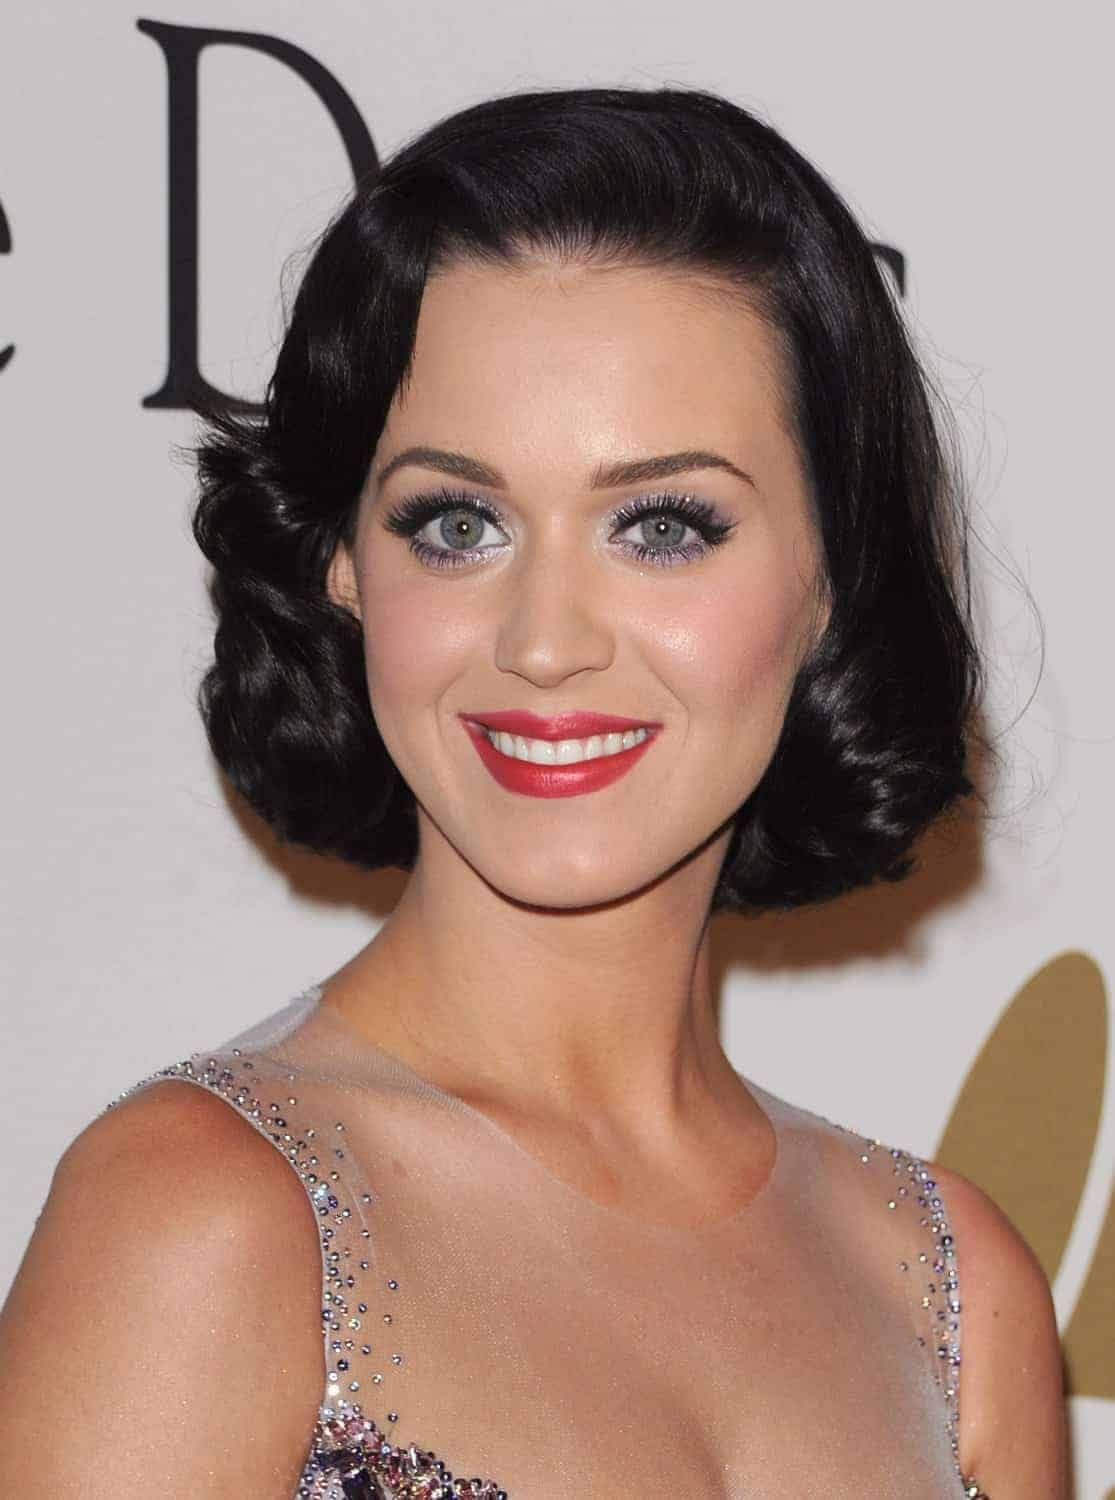 Vintage Hairstyles Short Retro How To Curl Short Hair For Vintage